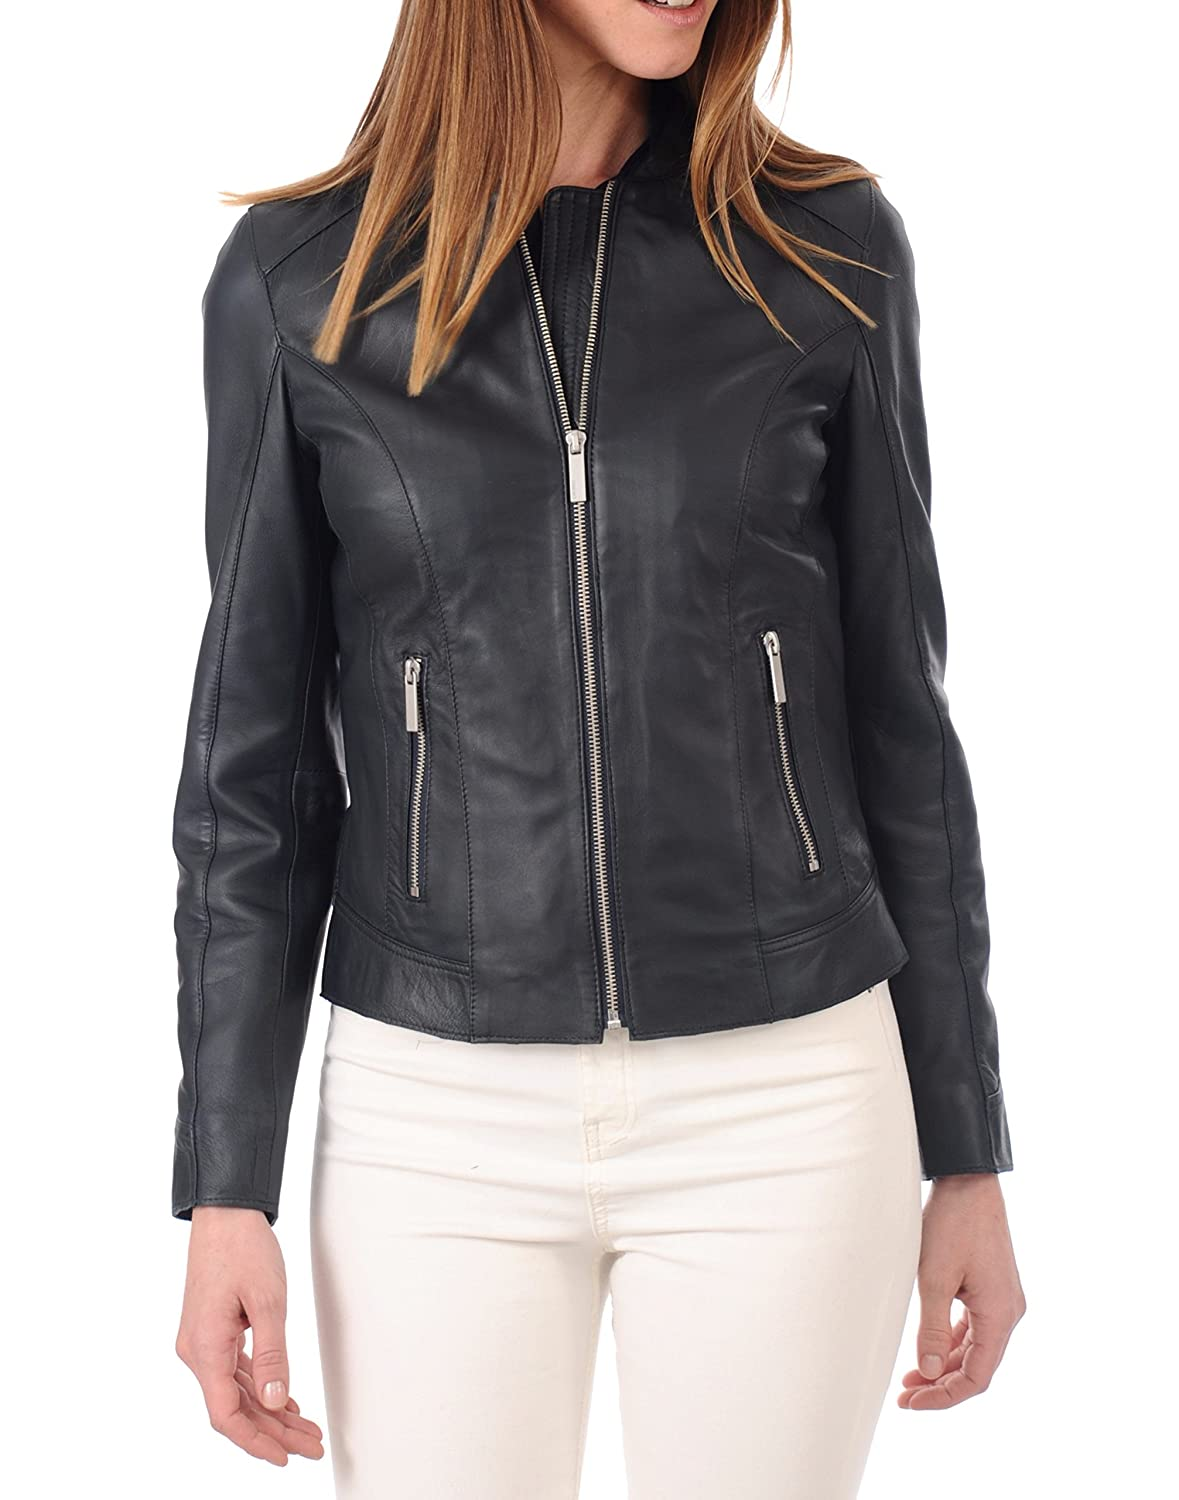 bluee19rc DOLLY LAMB 100% Leather Jacket for Women  Round Collar, Slim Fit & Quilted  Moto, Bomber, Biker Winter Casual Wear